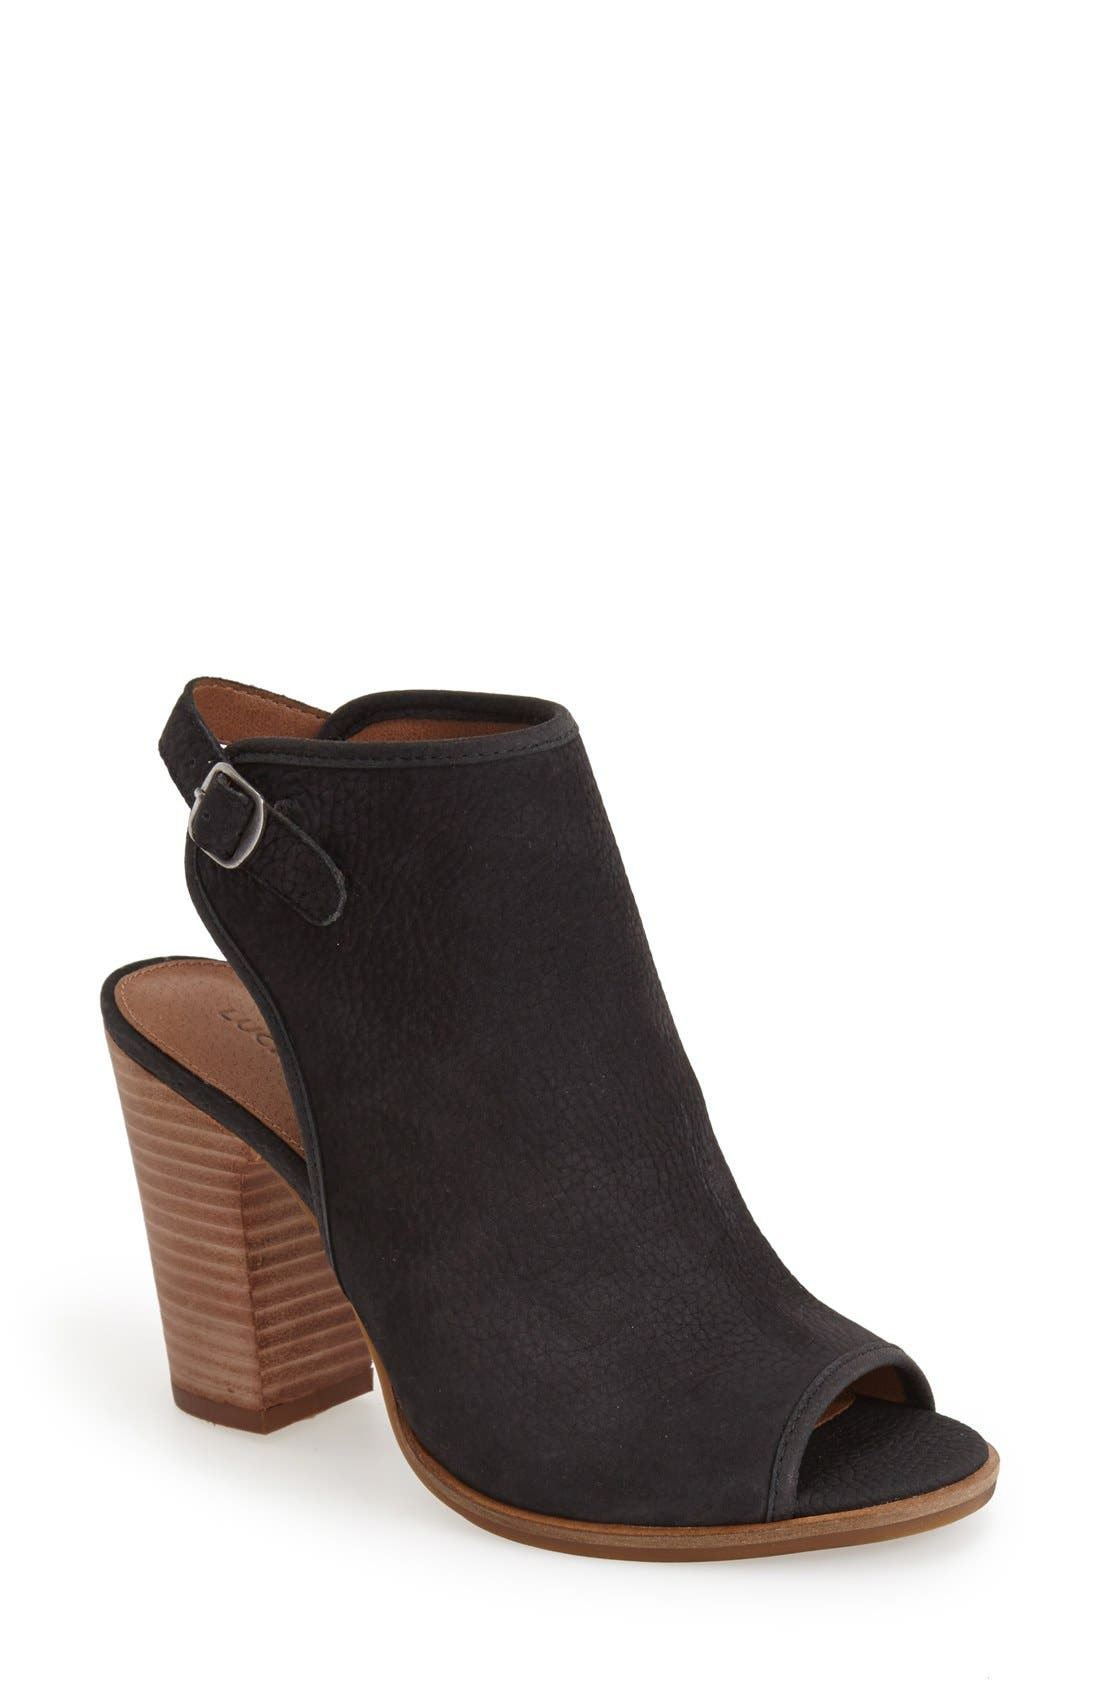 Main Image - Lucky Brand 'Lisza' Open Toe Bootie (Women)